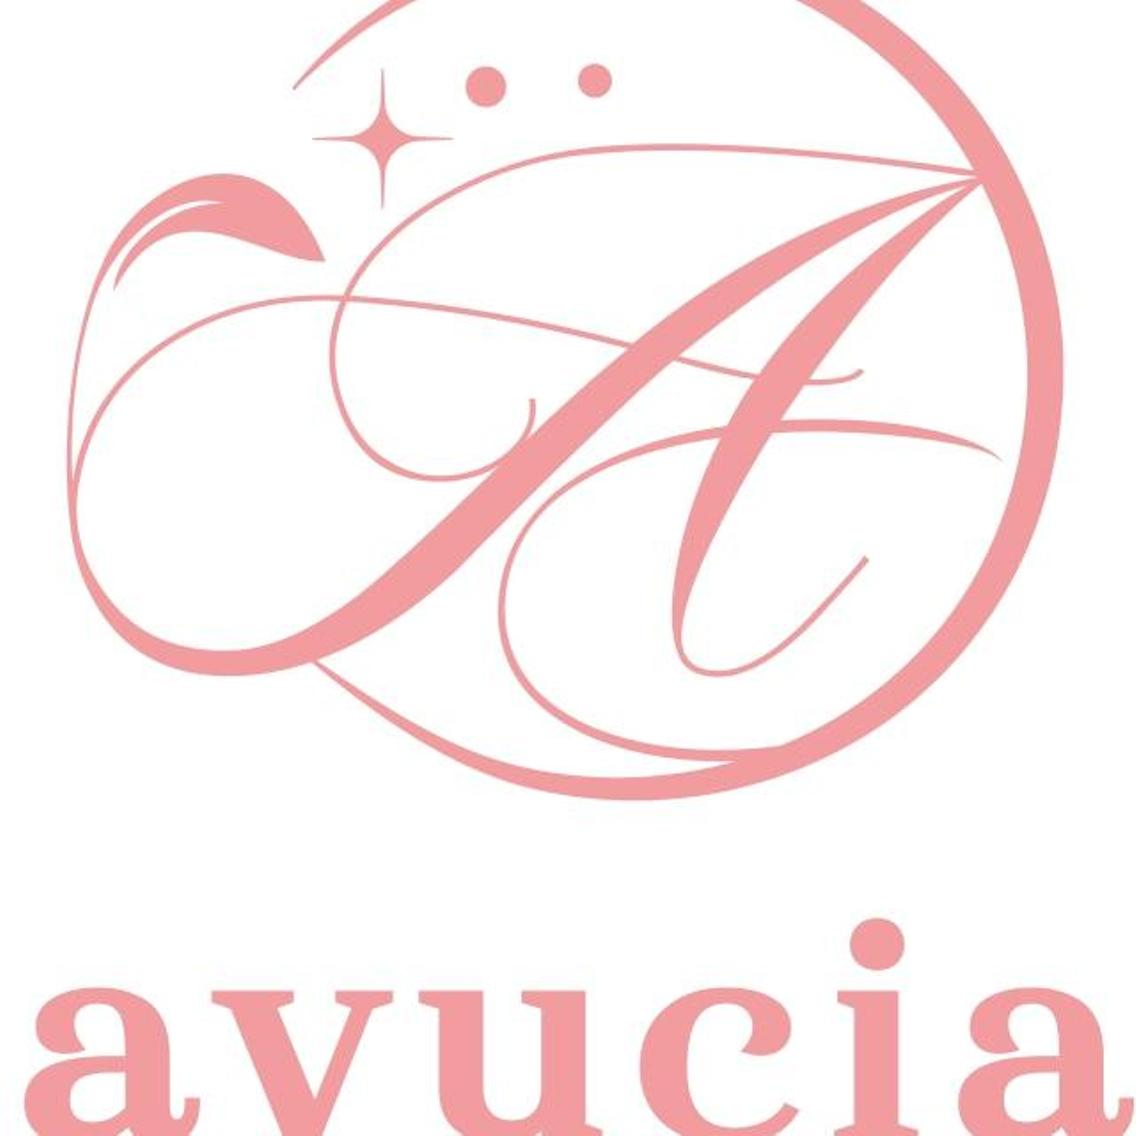 Total beauty salon ayucia所属・ayucia の掲載